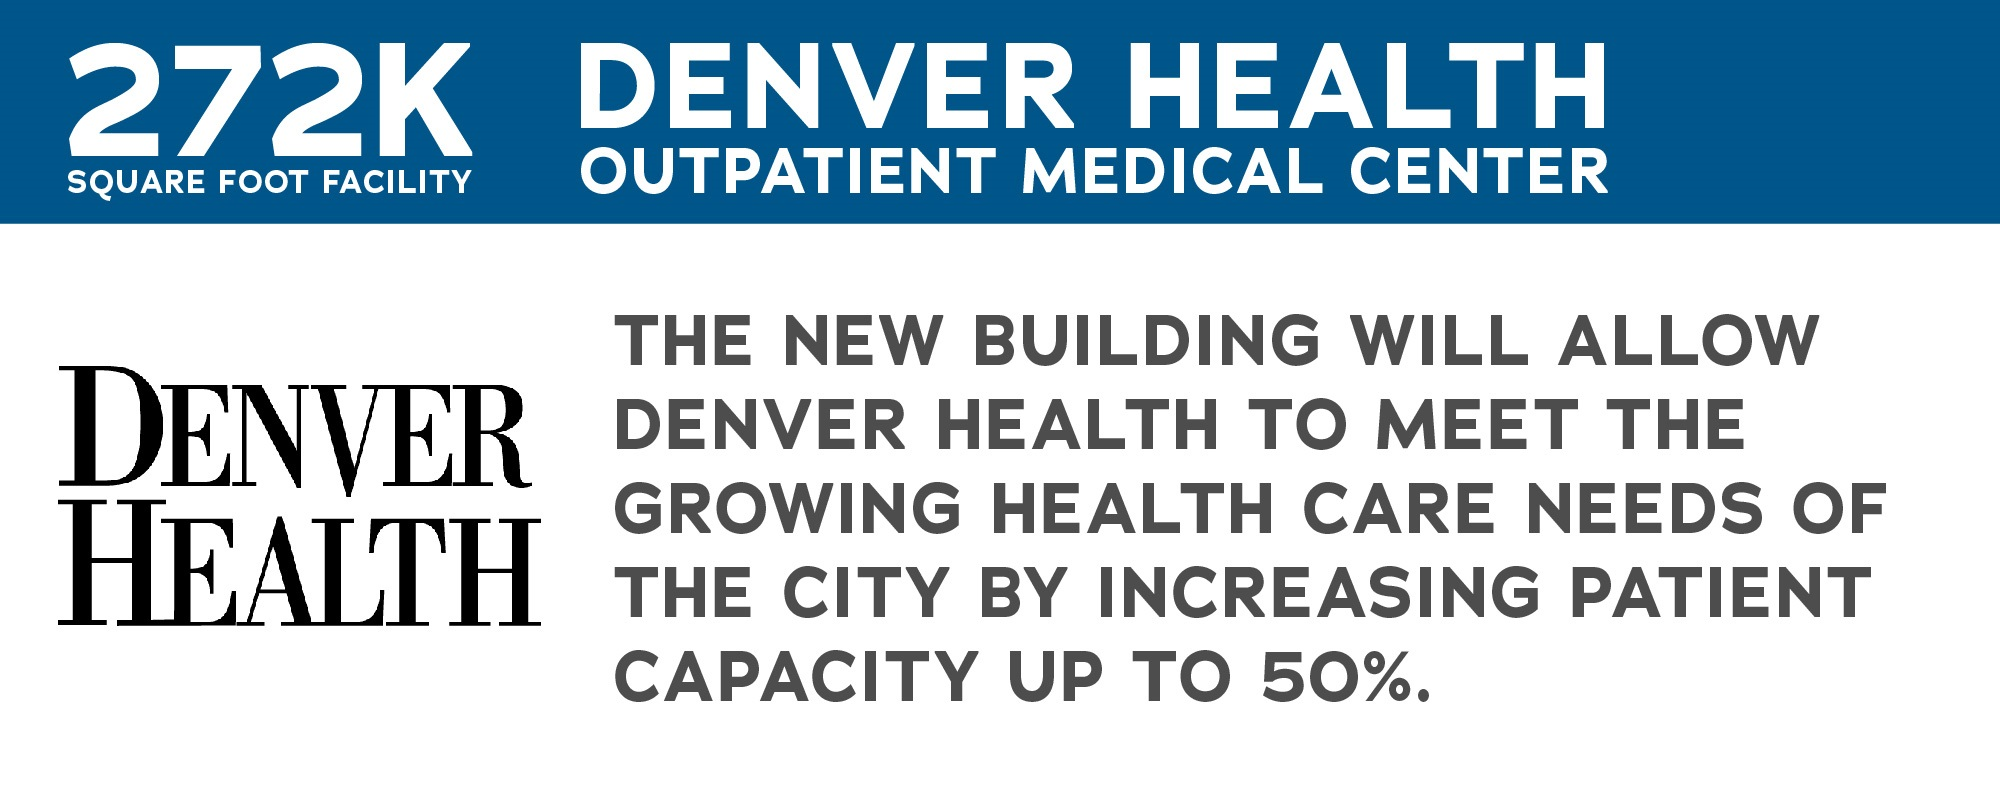 Denver Health Outpatient Medical Center graphic